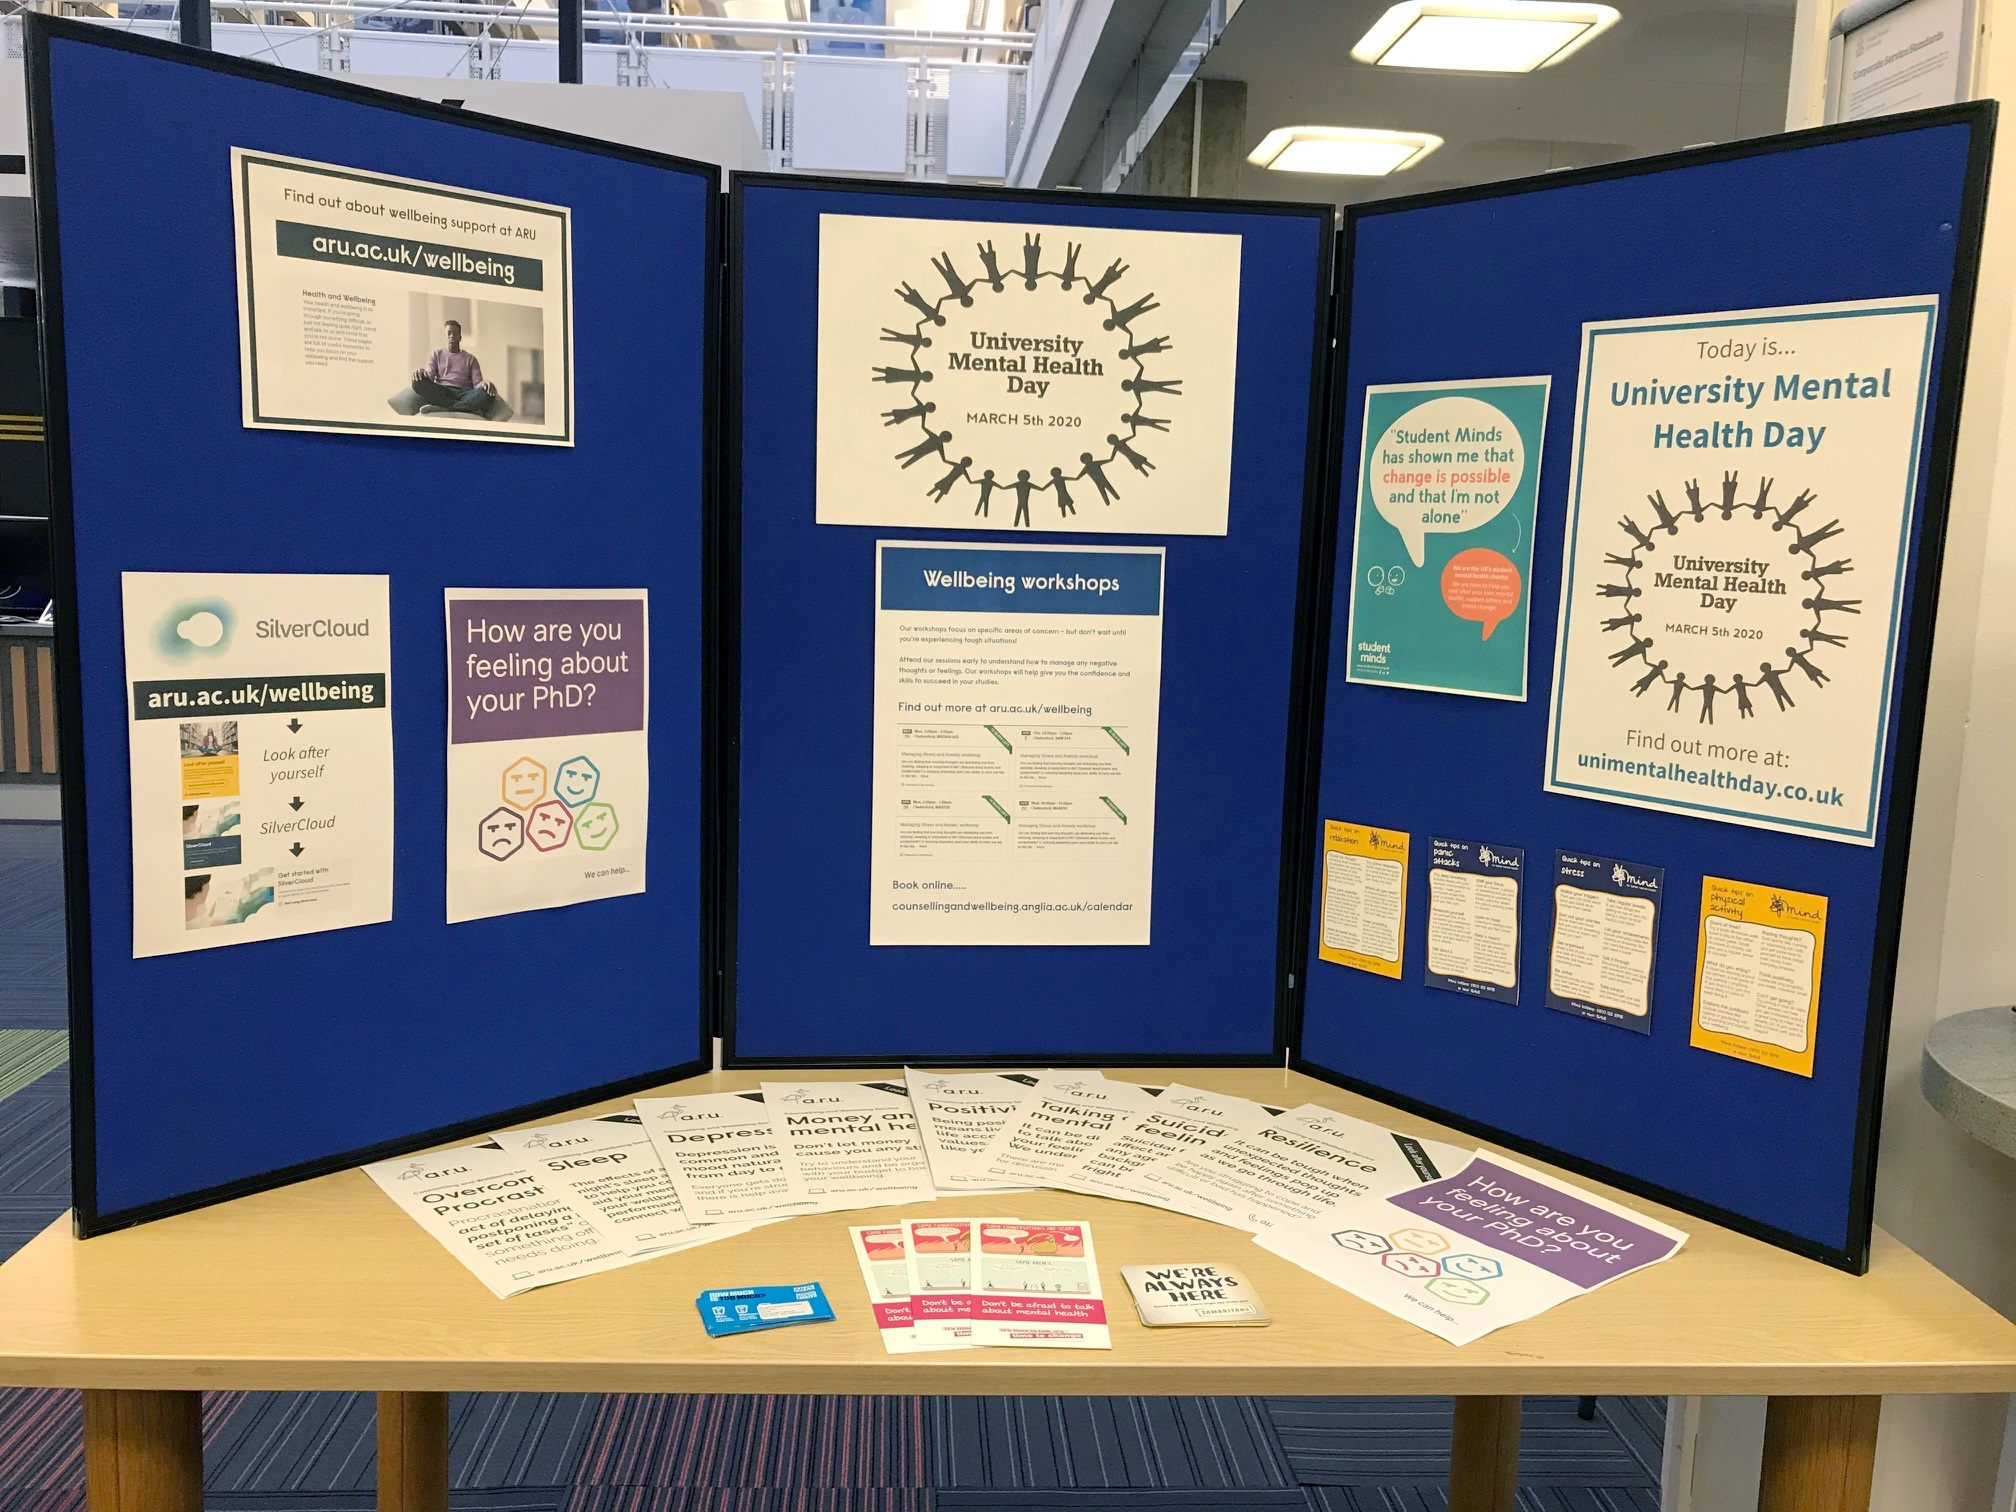 Chelmsford University Mental Health Day